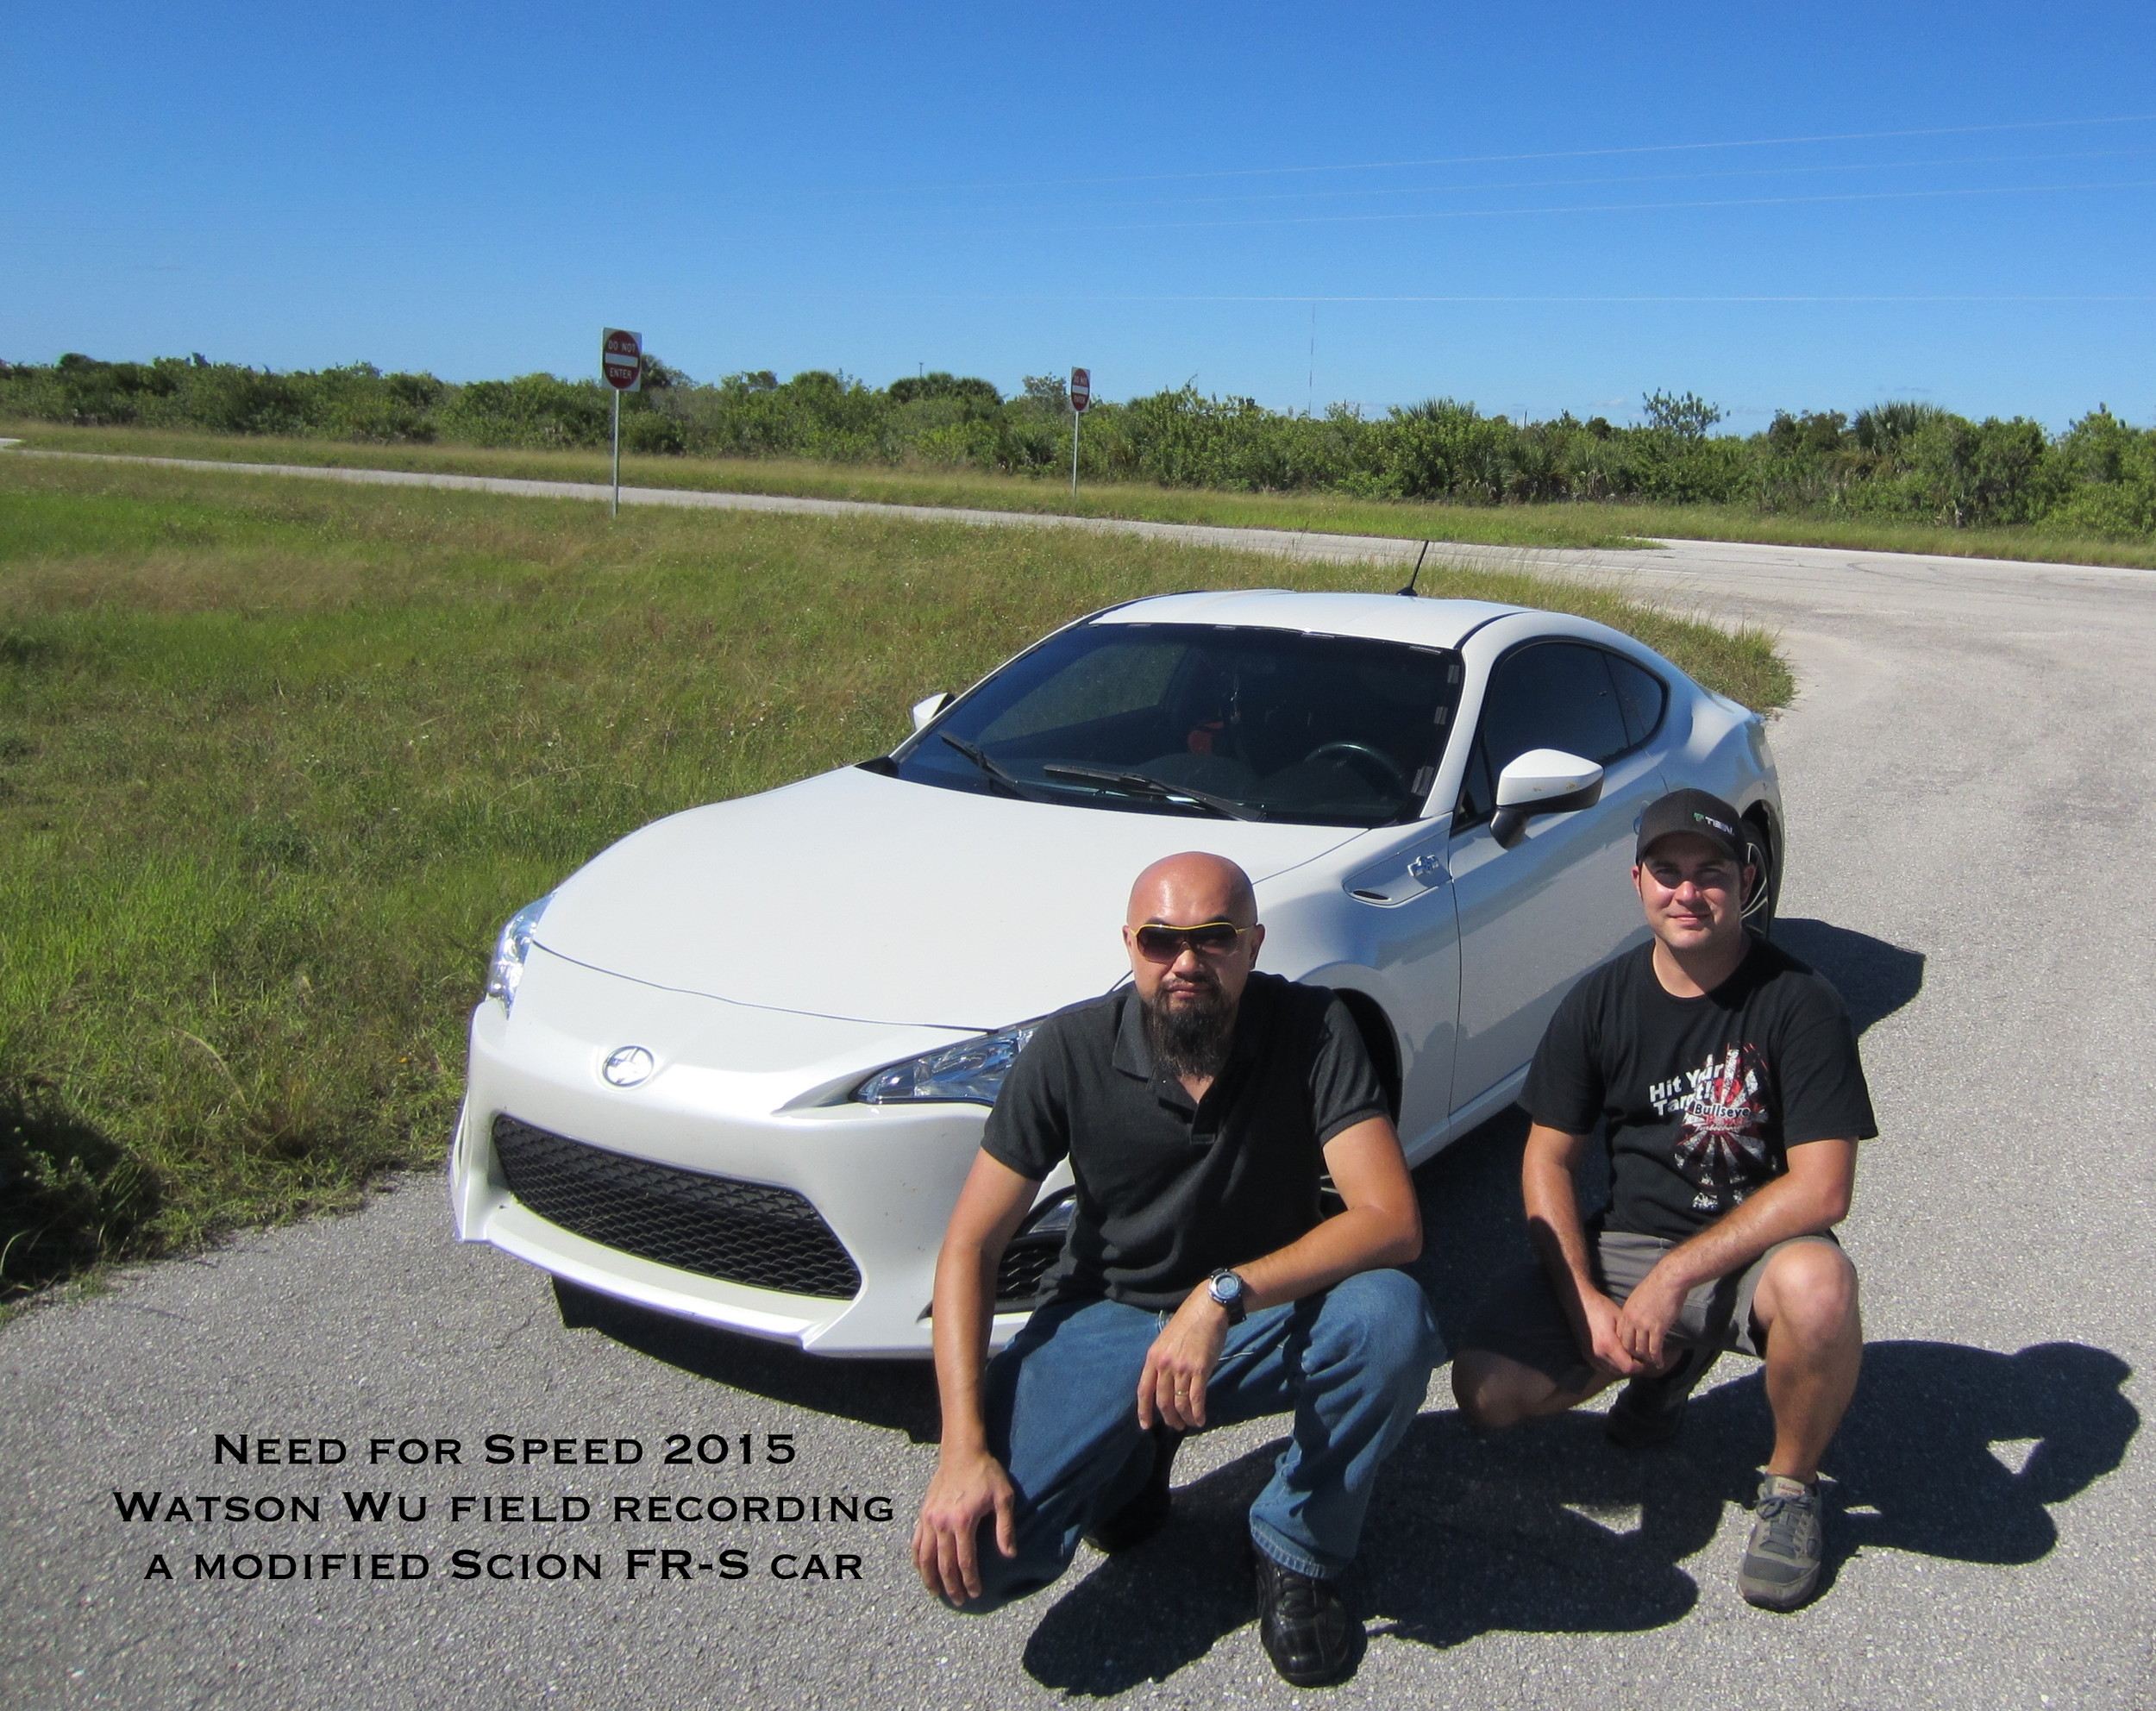 Watson field recording a modified Scion FR-S sports car. Derrick DuMont is the tuner & driver.